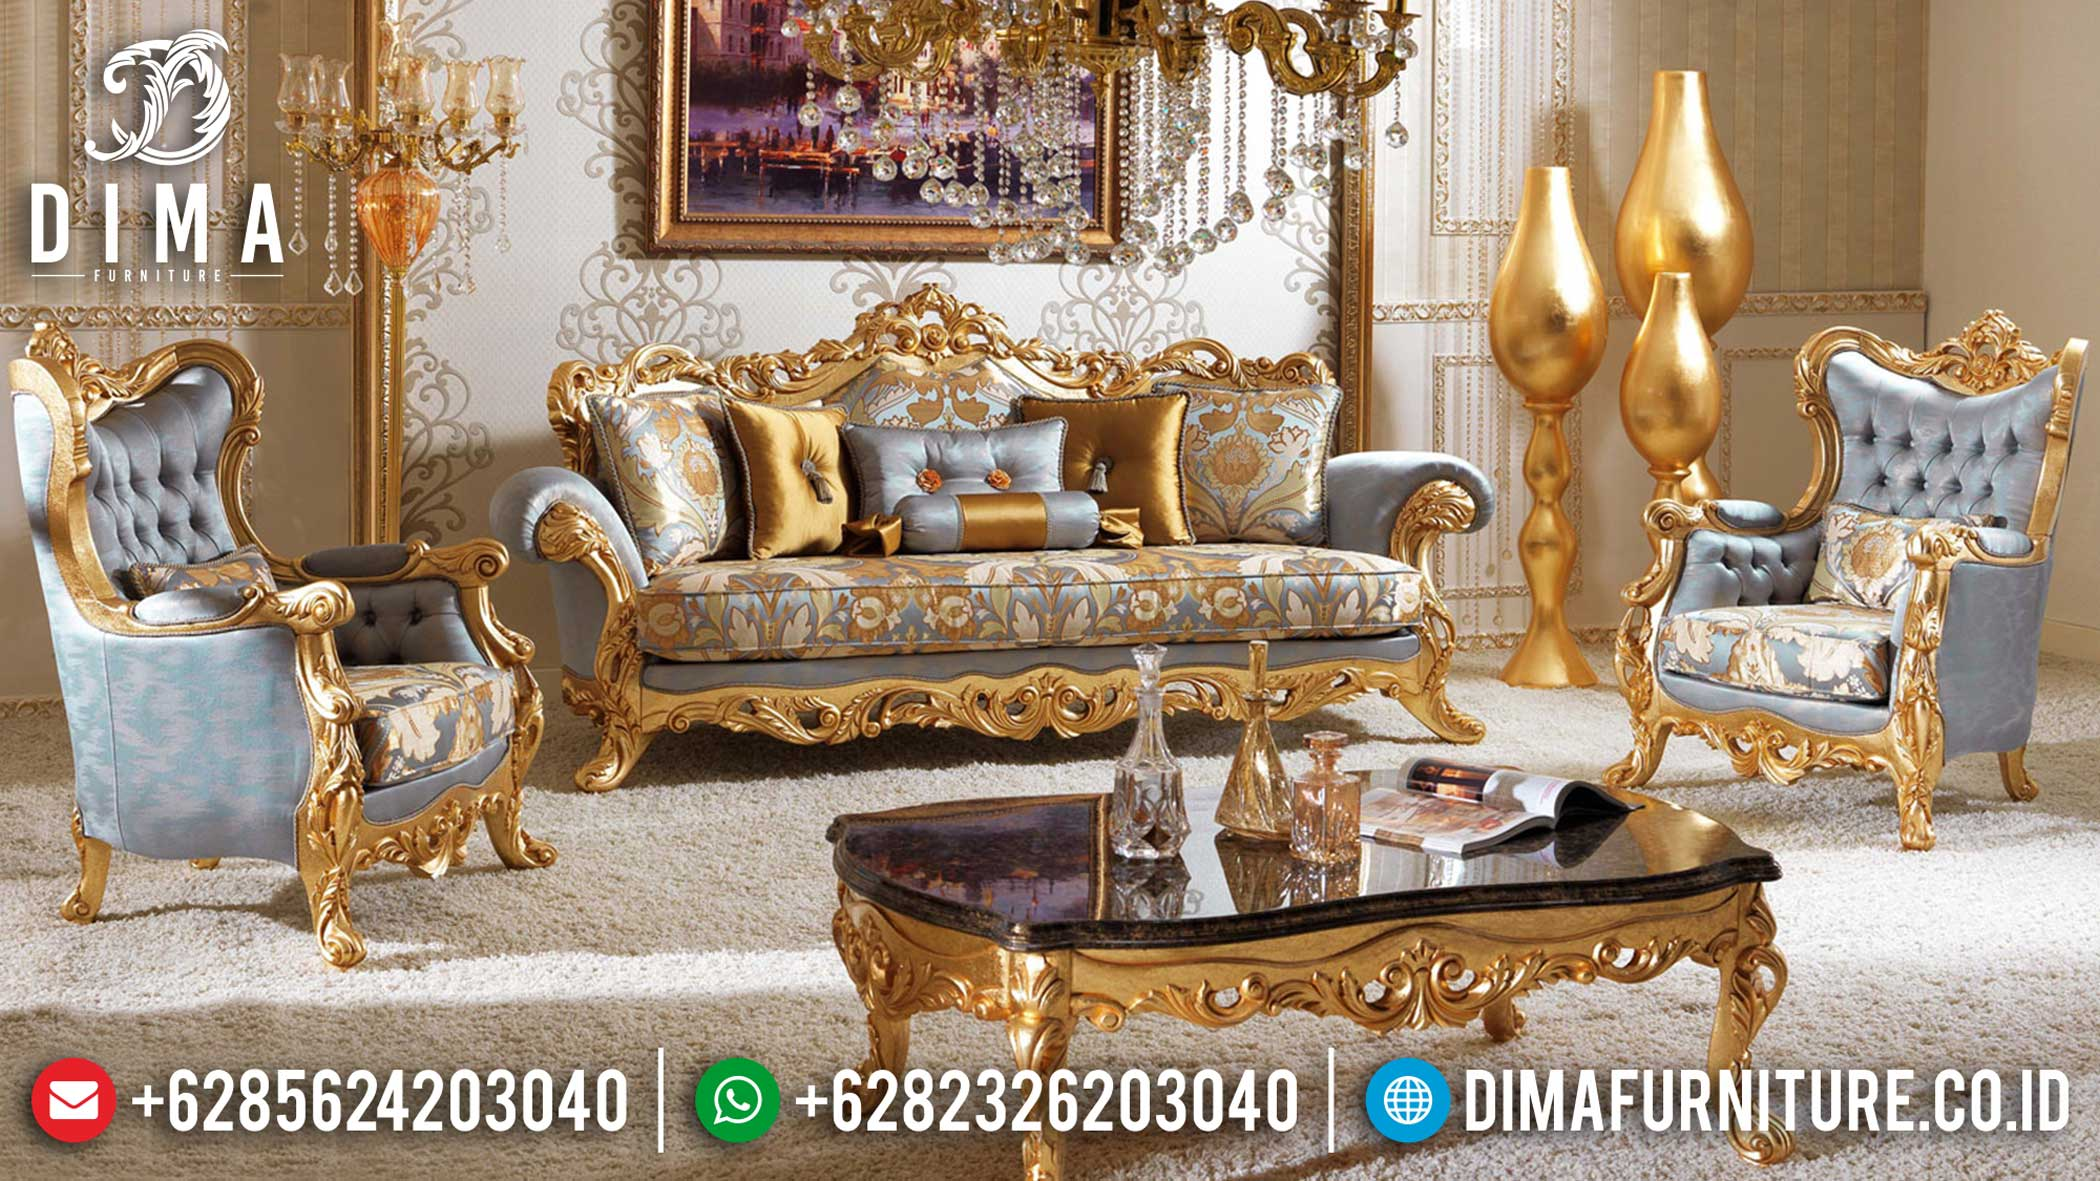 For Sale Sofa Tamu Ukiran Mewah Golden Leaf Luxury Italian Style BT-0852